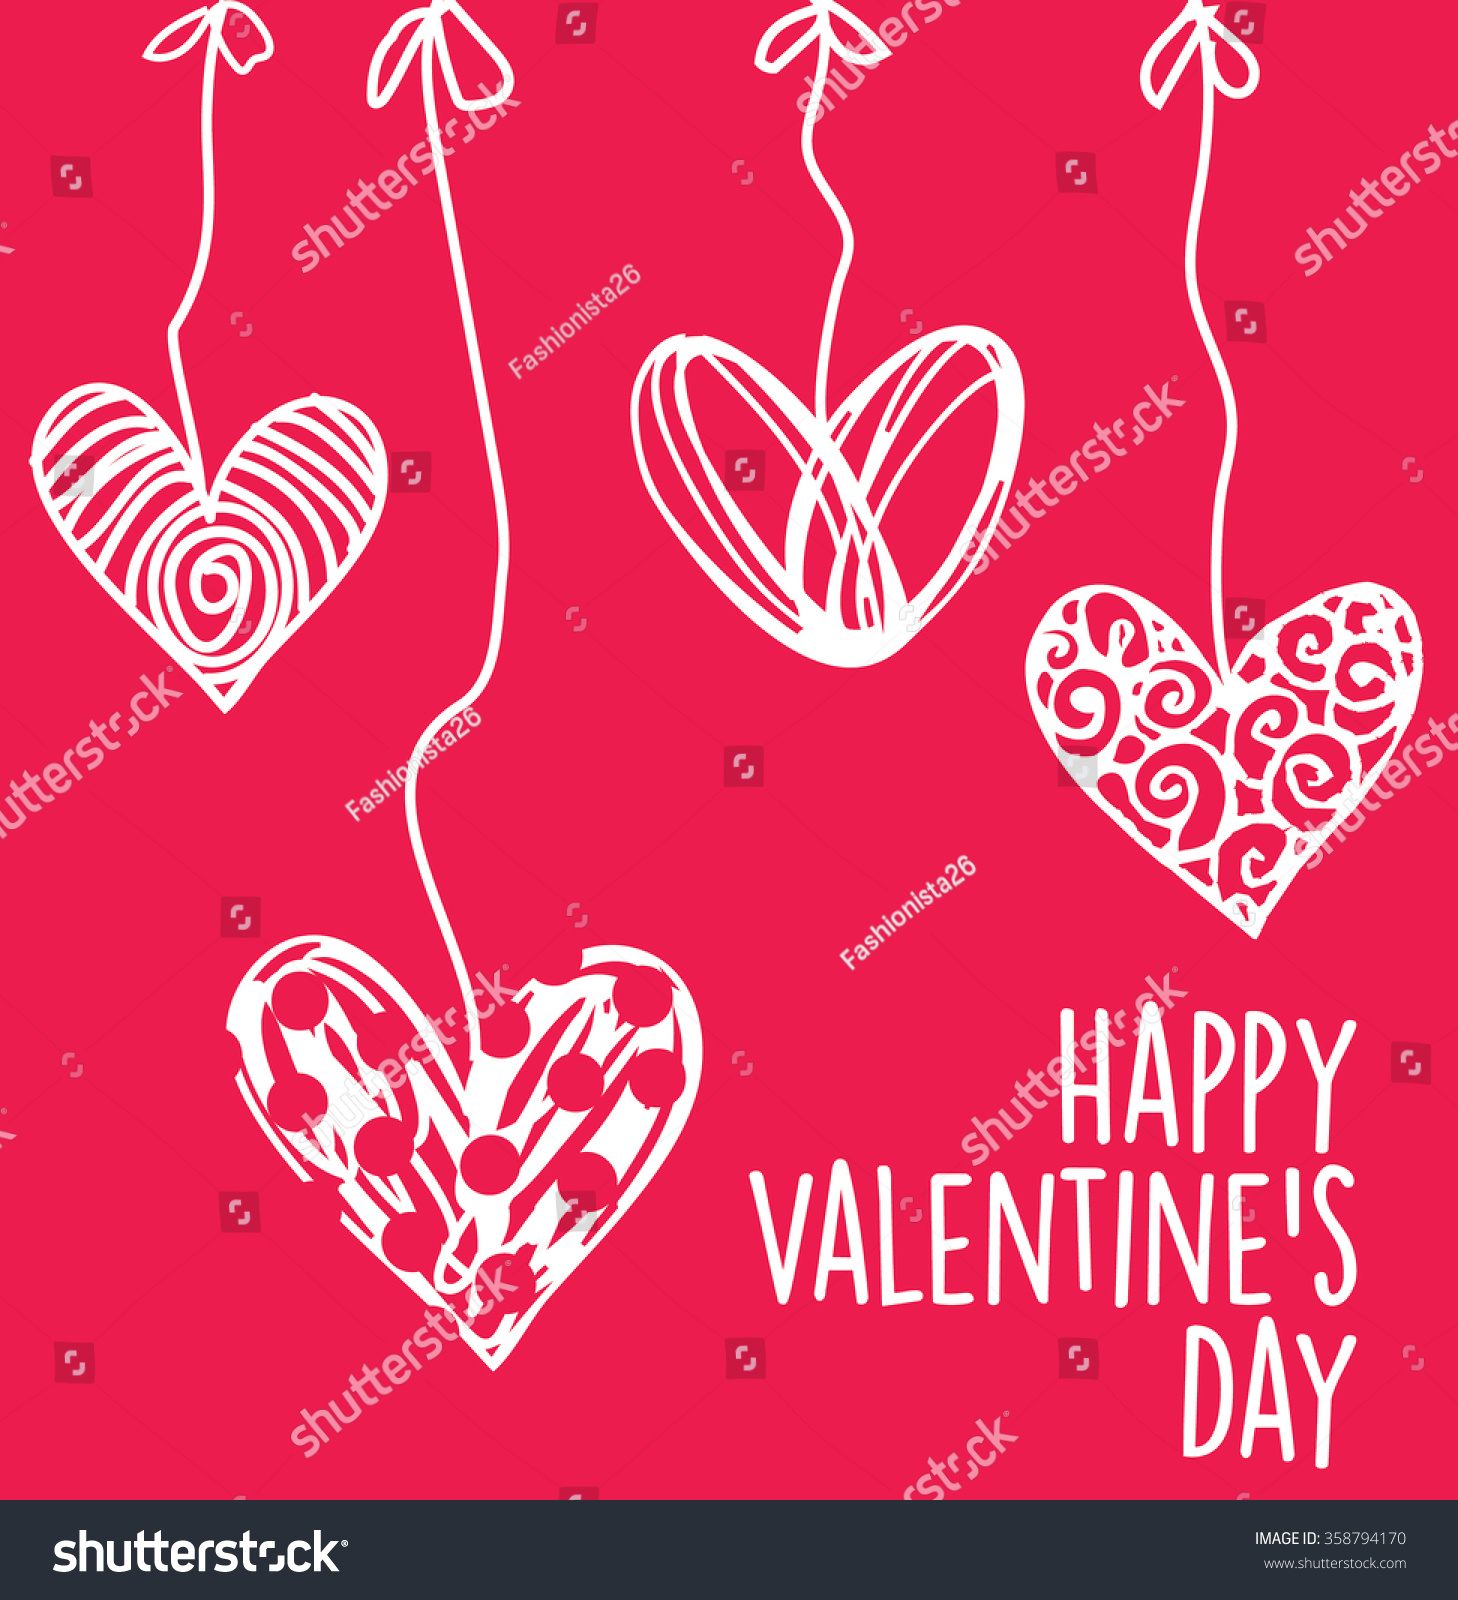 Valentine Card Template Word Topsimages